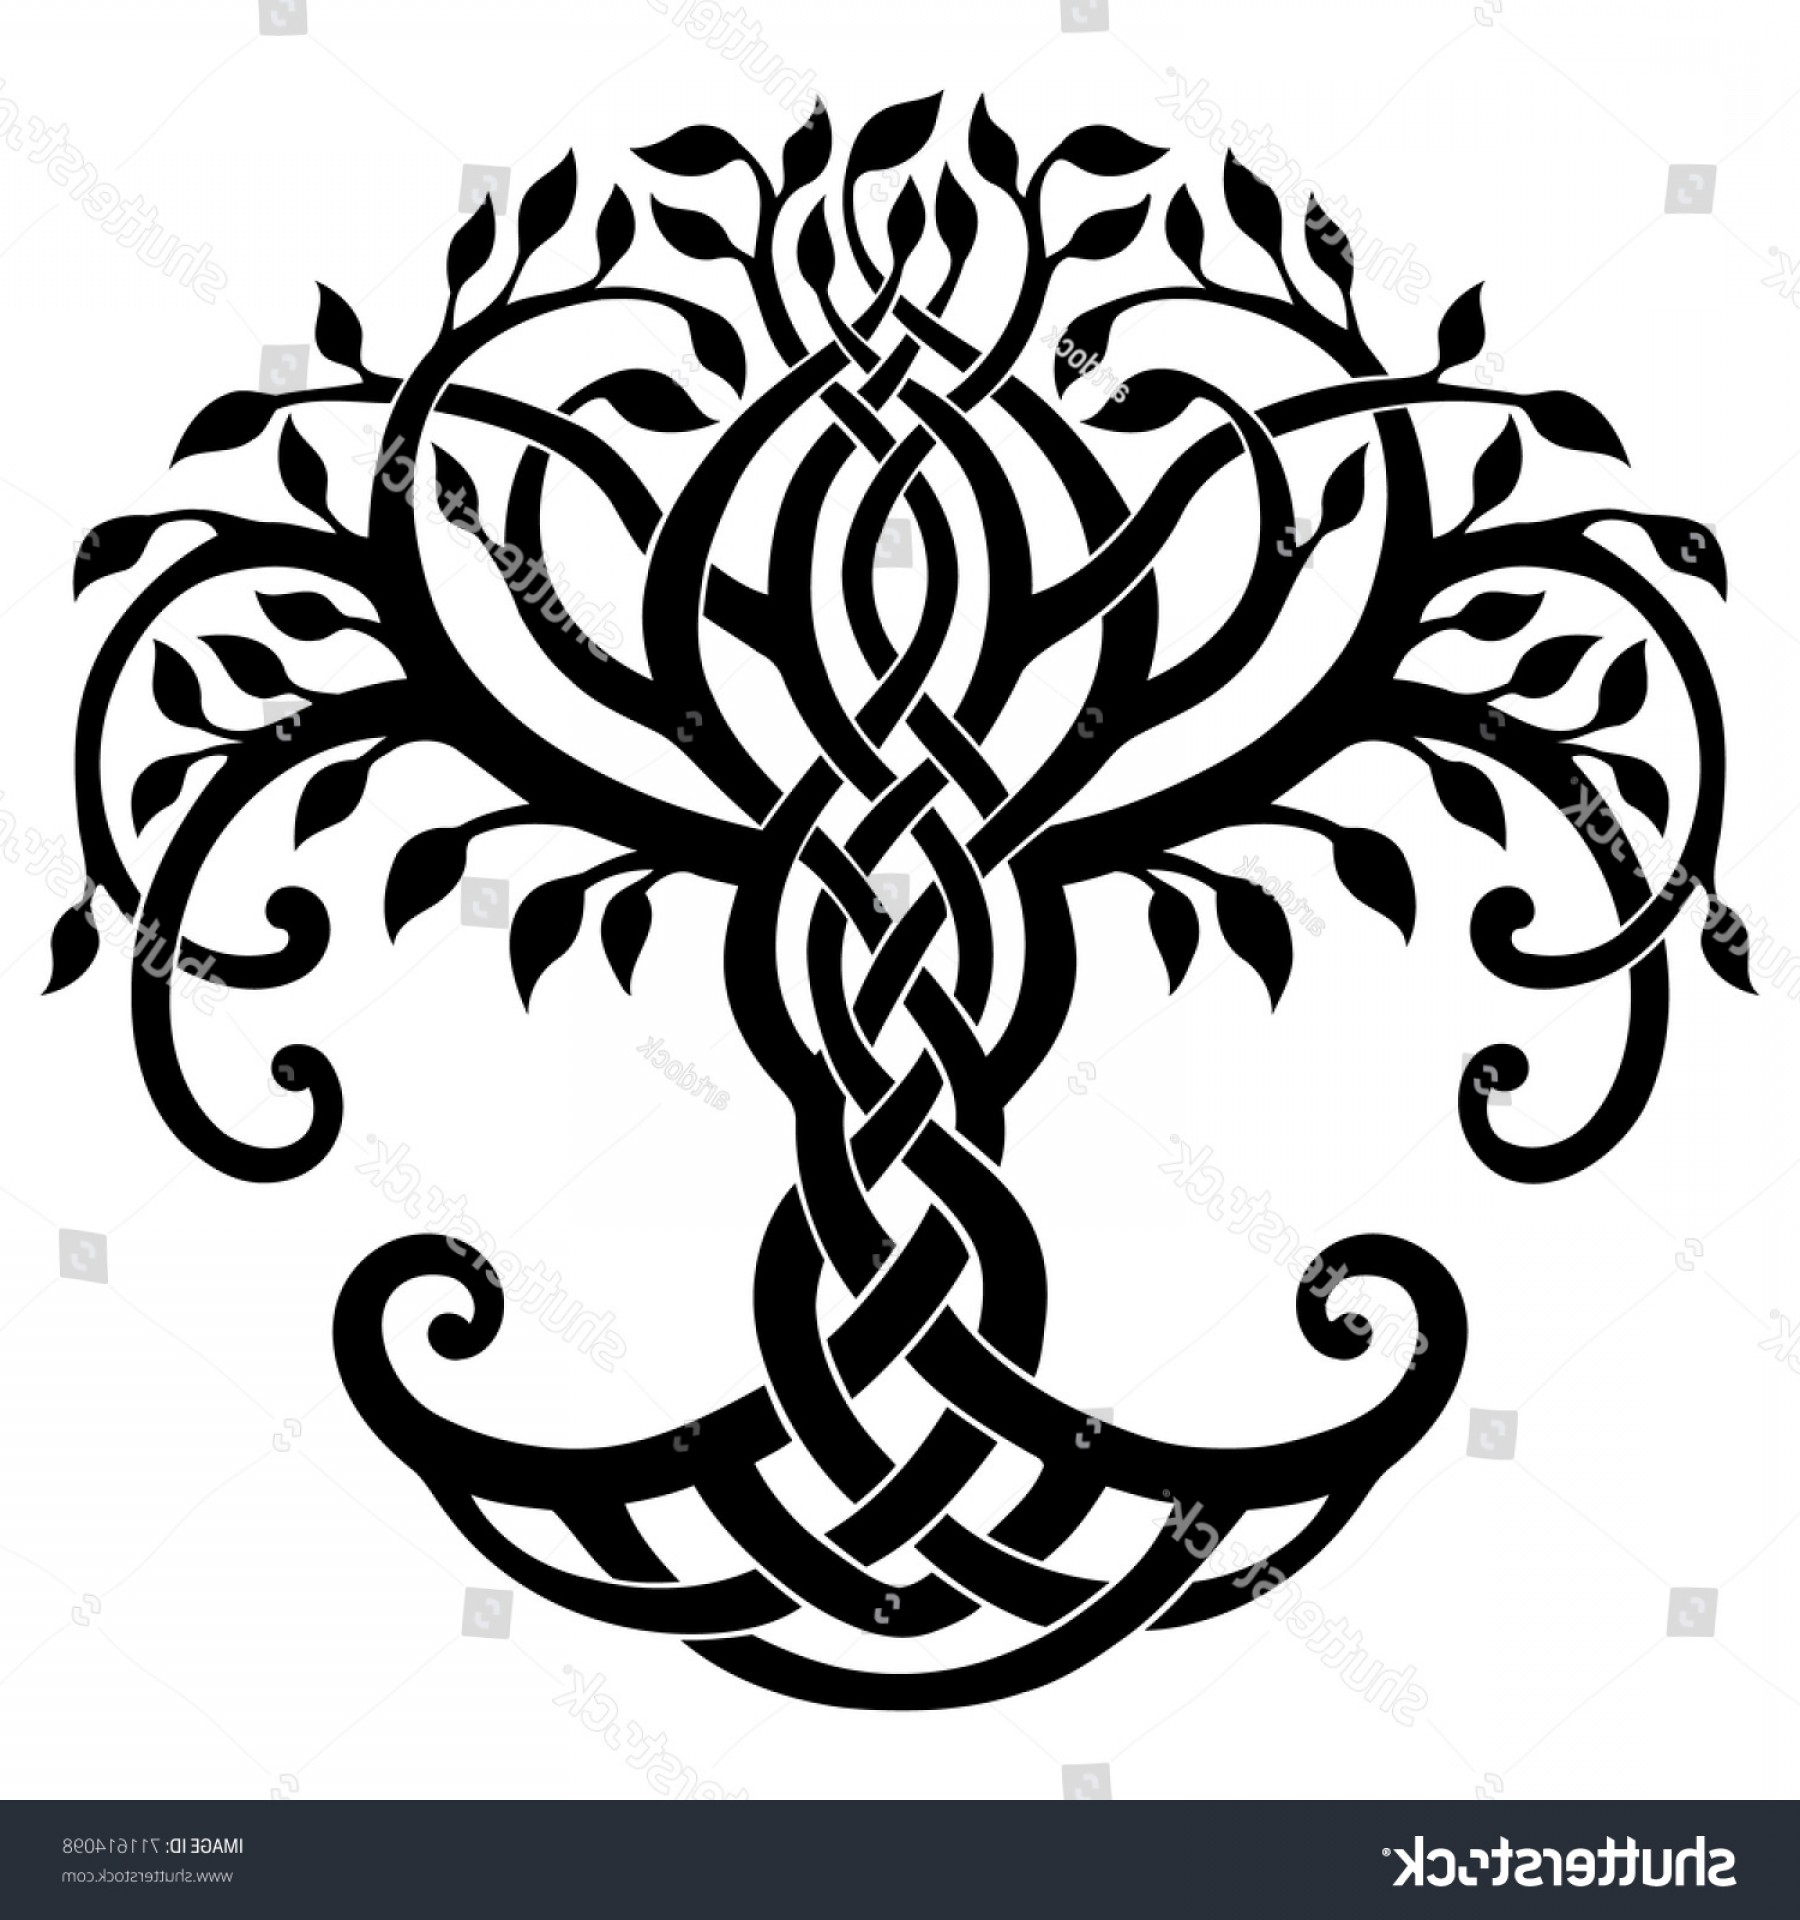 Celtic Tree Vector: Vector Illustration Decorative Celtic Tree Life